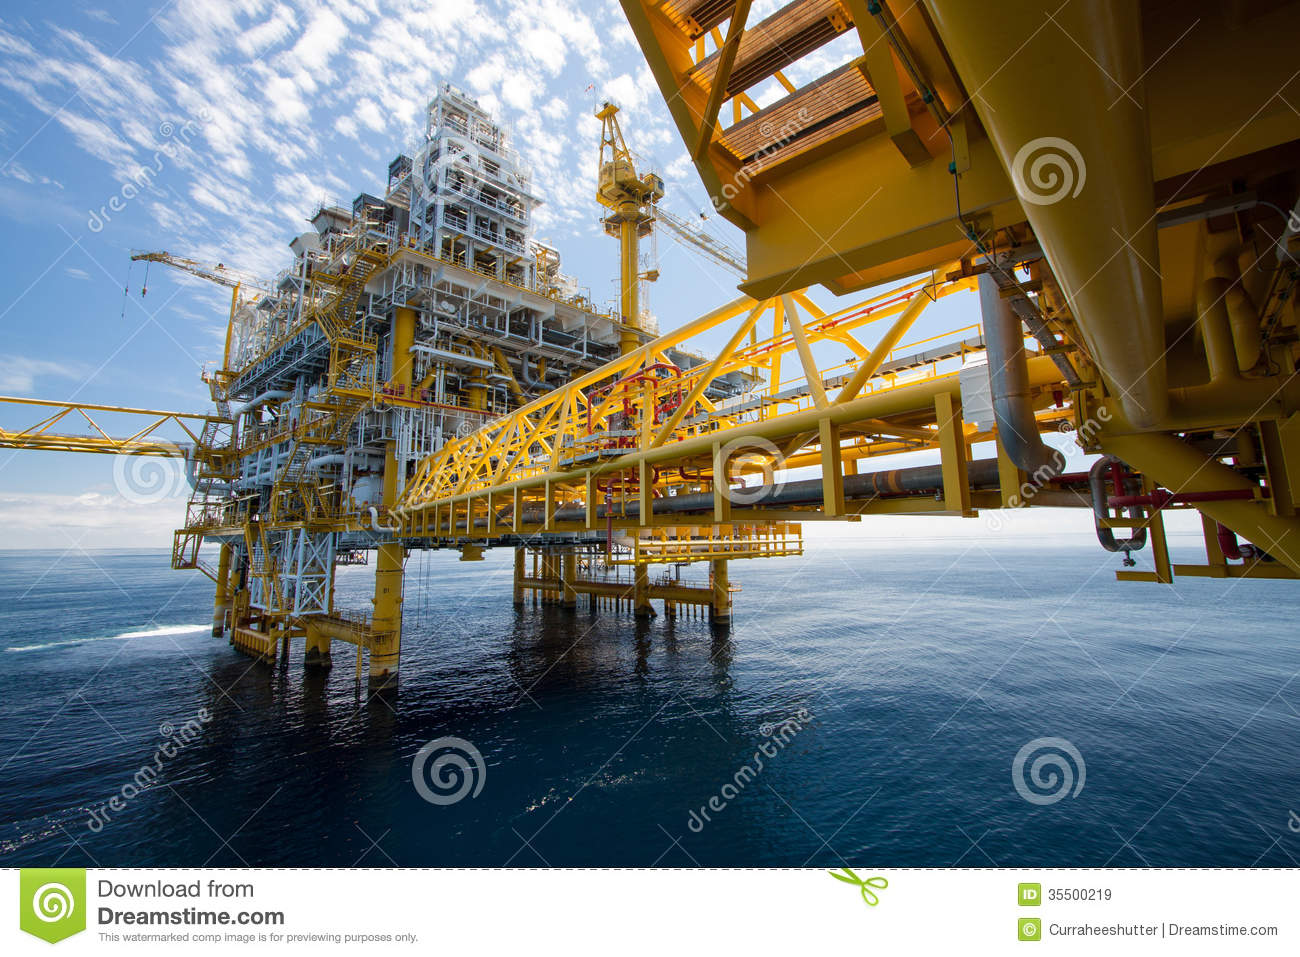 Oil and gas platform in offshore